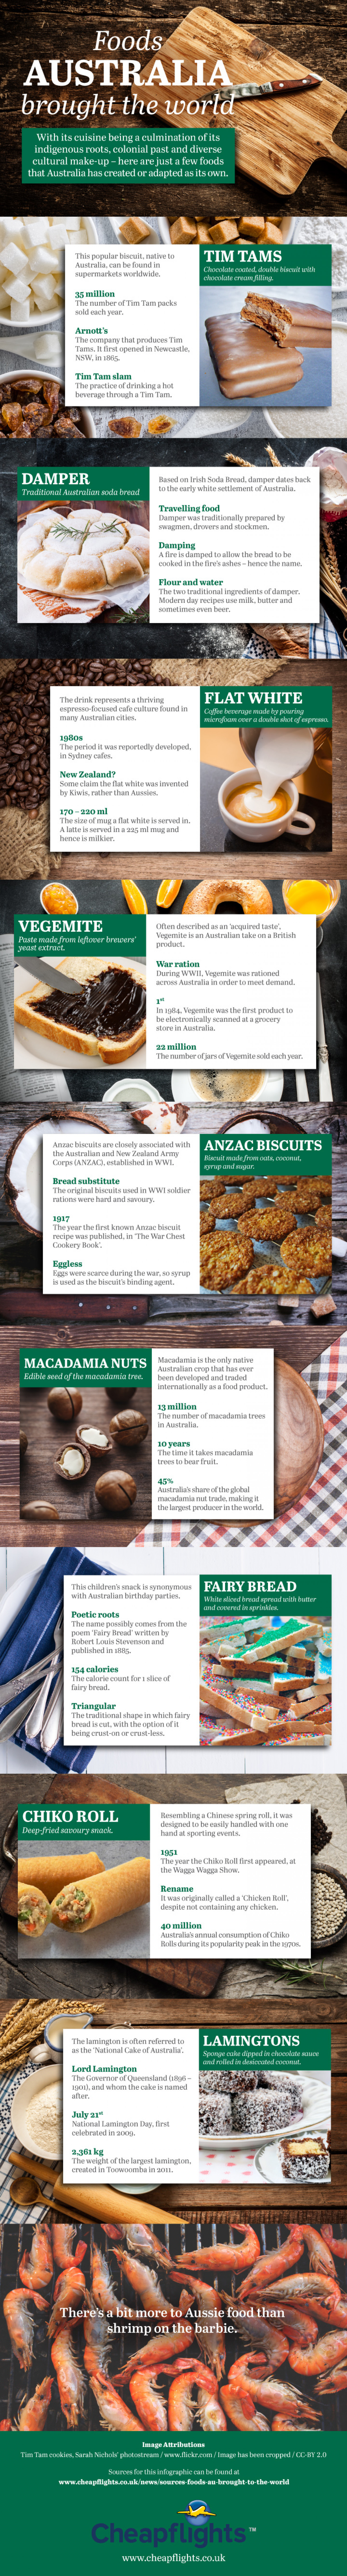 Foods that Australia Brought the World Infographic